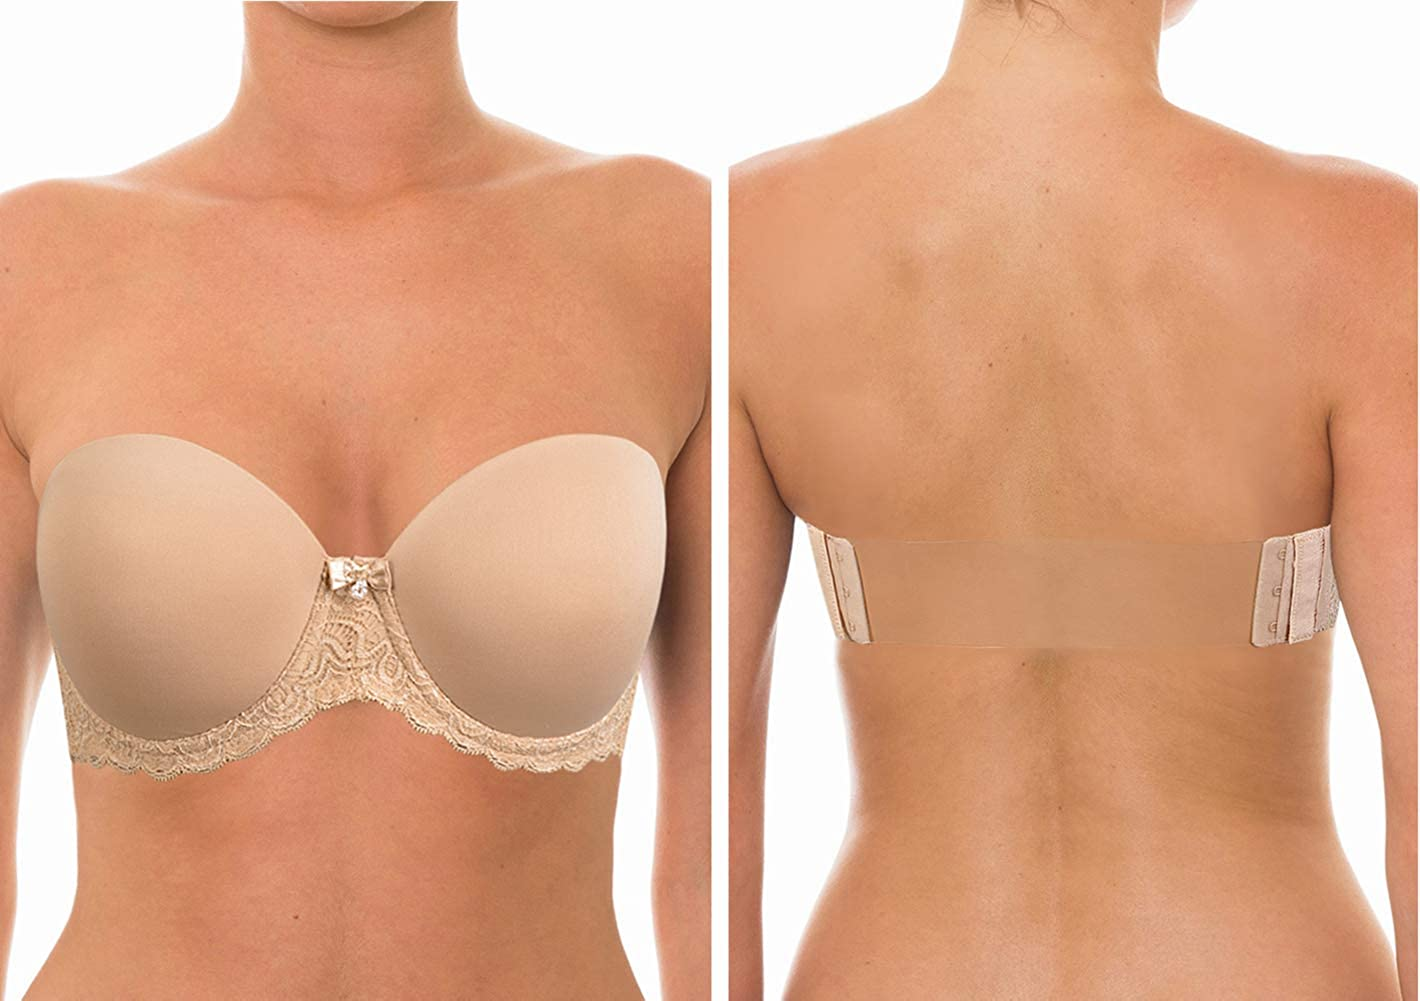 YANDW Strapless Lightly Padded Full Figured Coverage Bra Clear Back Multiway Invisible Straps Backless Brassiere for Women